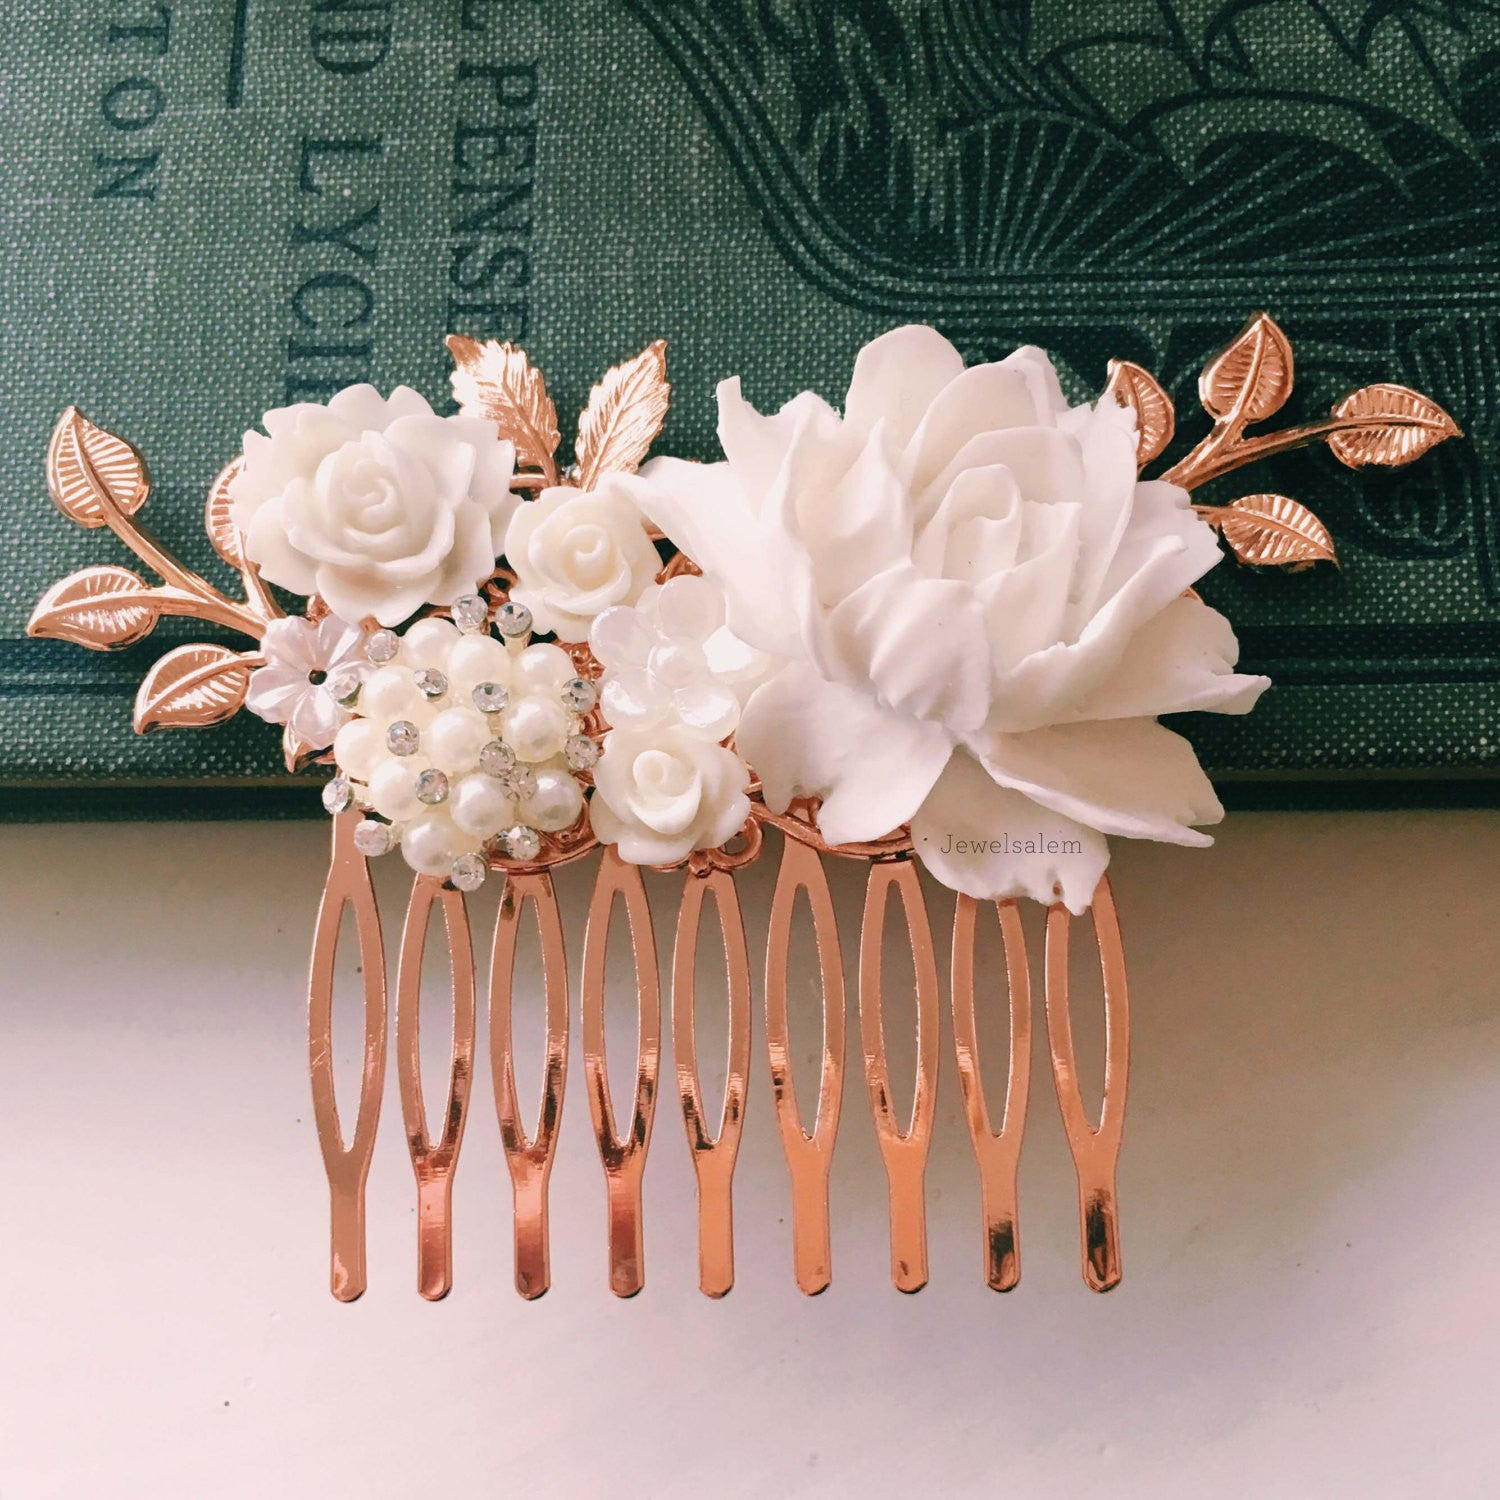 Pemberly - White Flower Rose Gold Wedding Comb